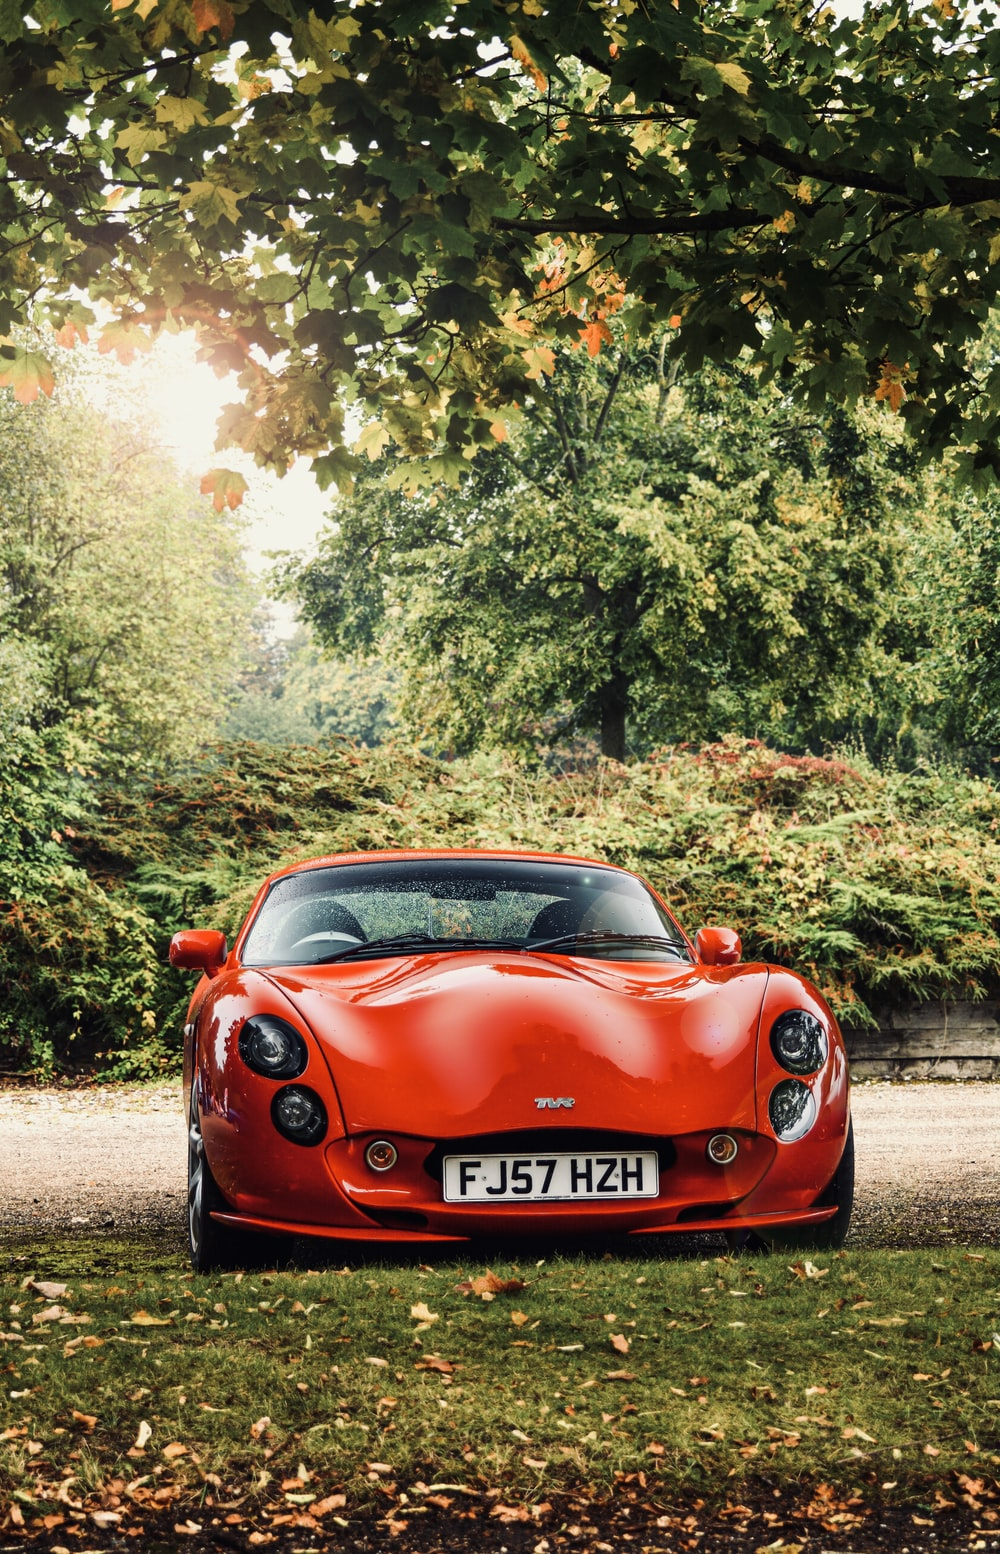 red supercar on grass